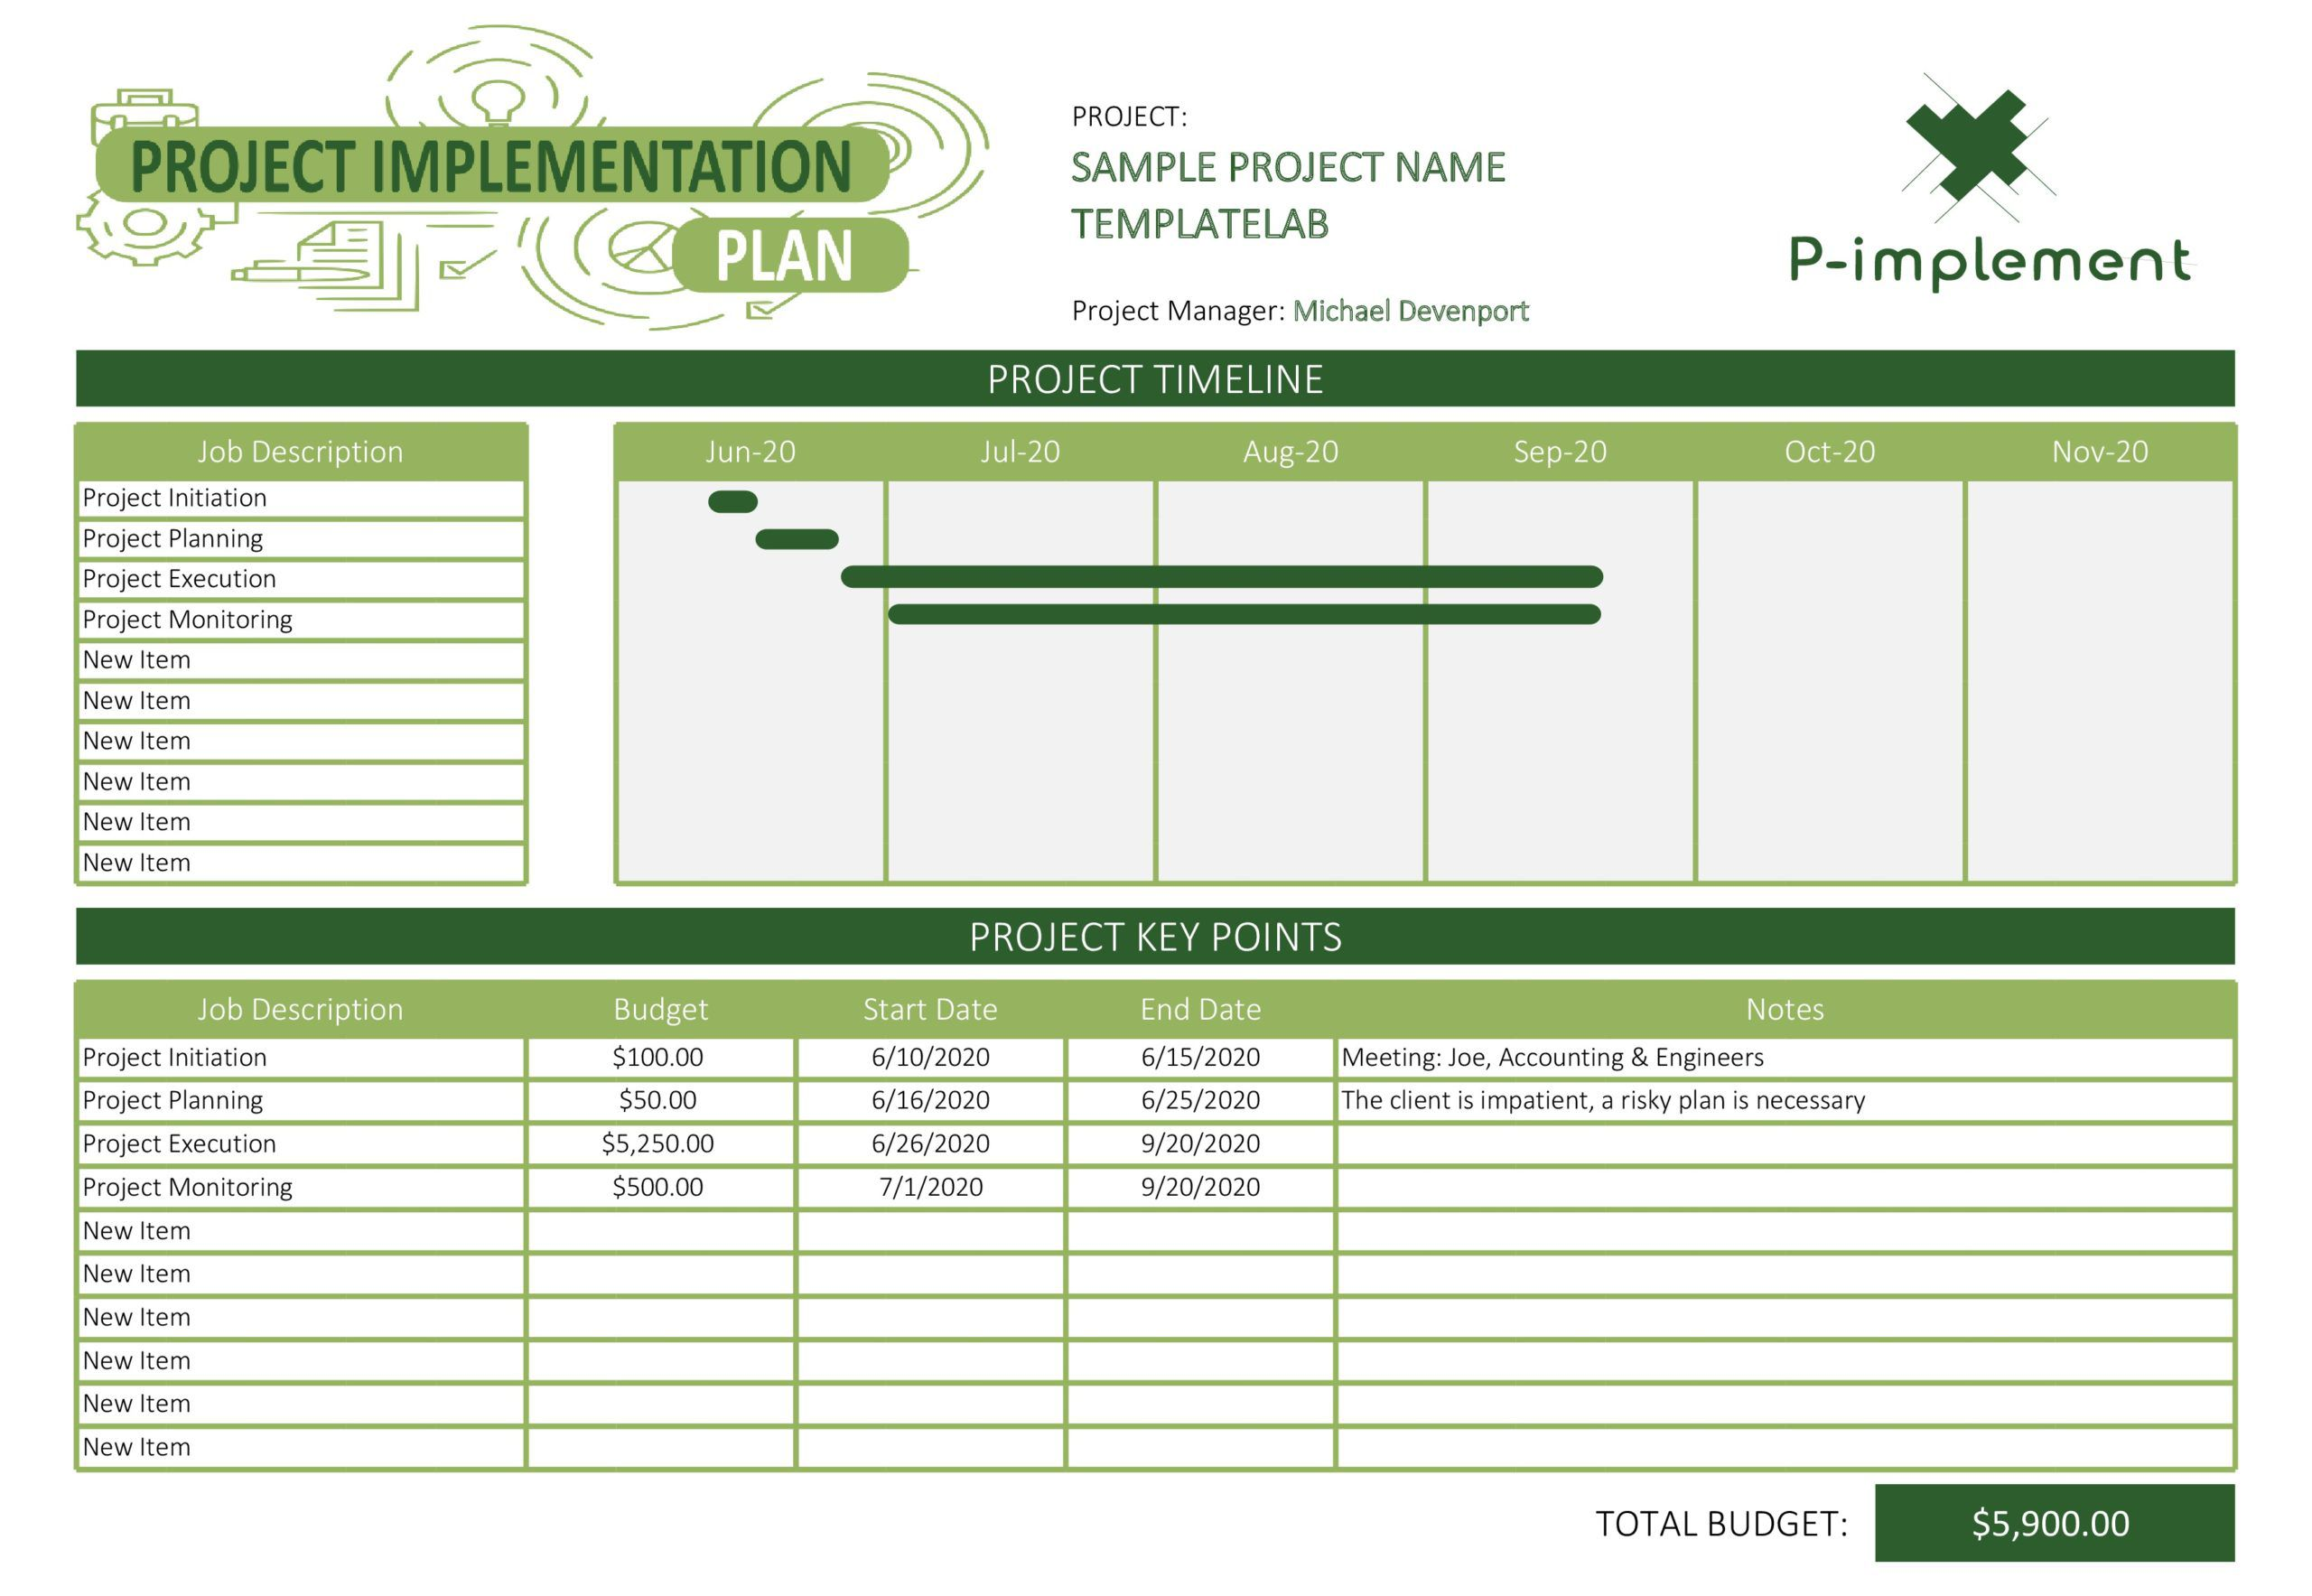 001 Remarkable Project Planning Template Word Free High Def  Simple Management Plan ScheduleFull